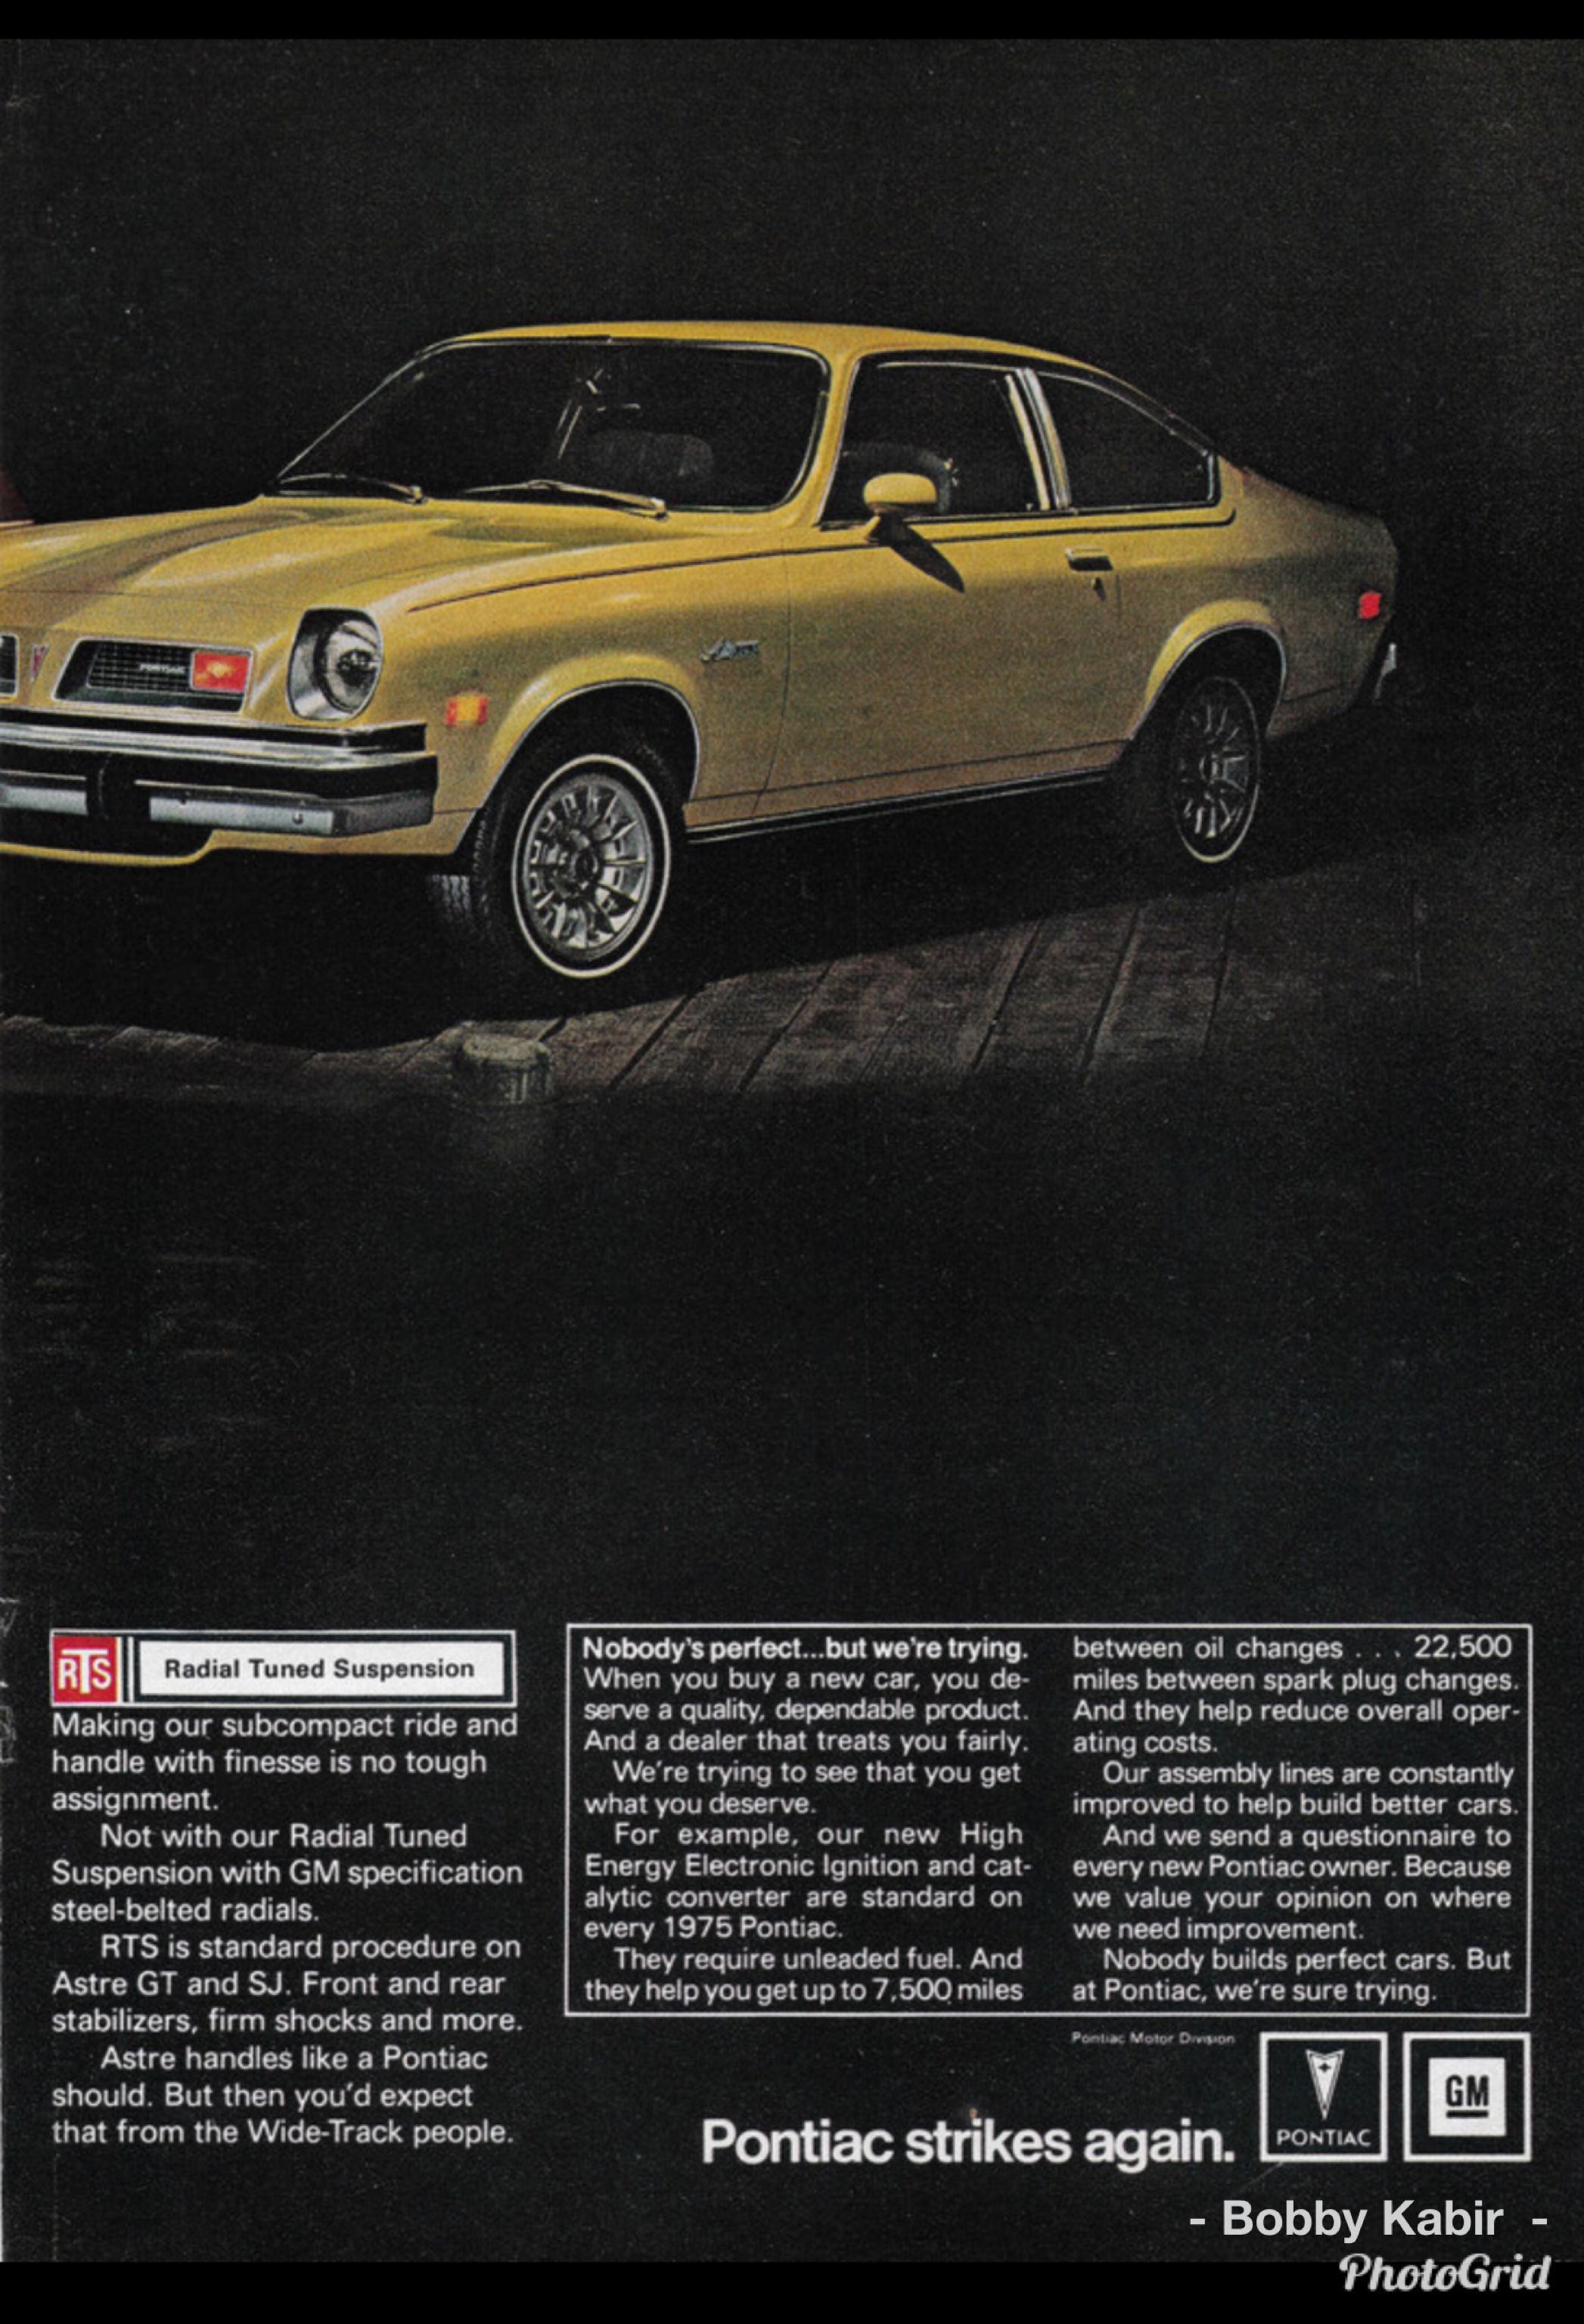 1975 Pontiac Astre Page T W O Of Two U S A By Michael On Flickr